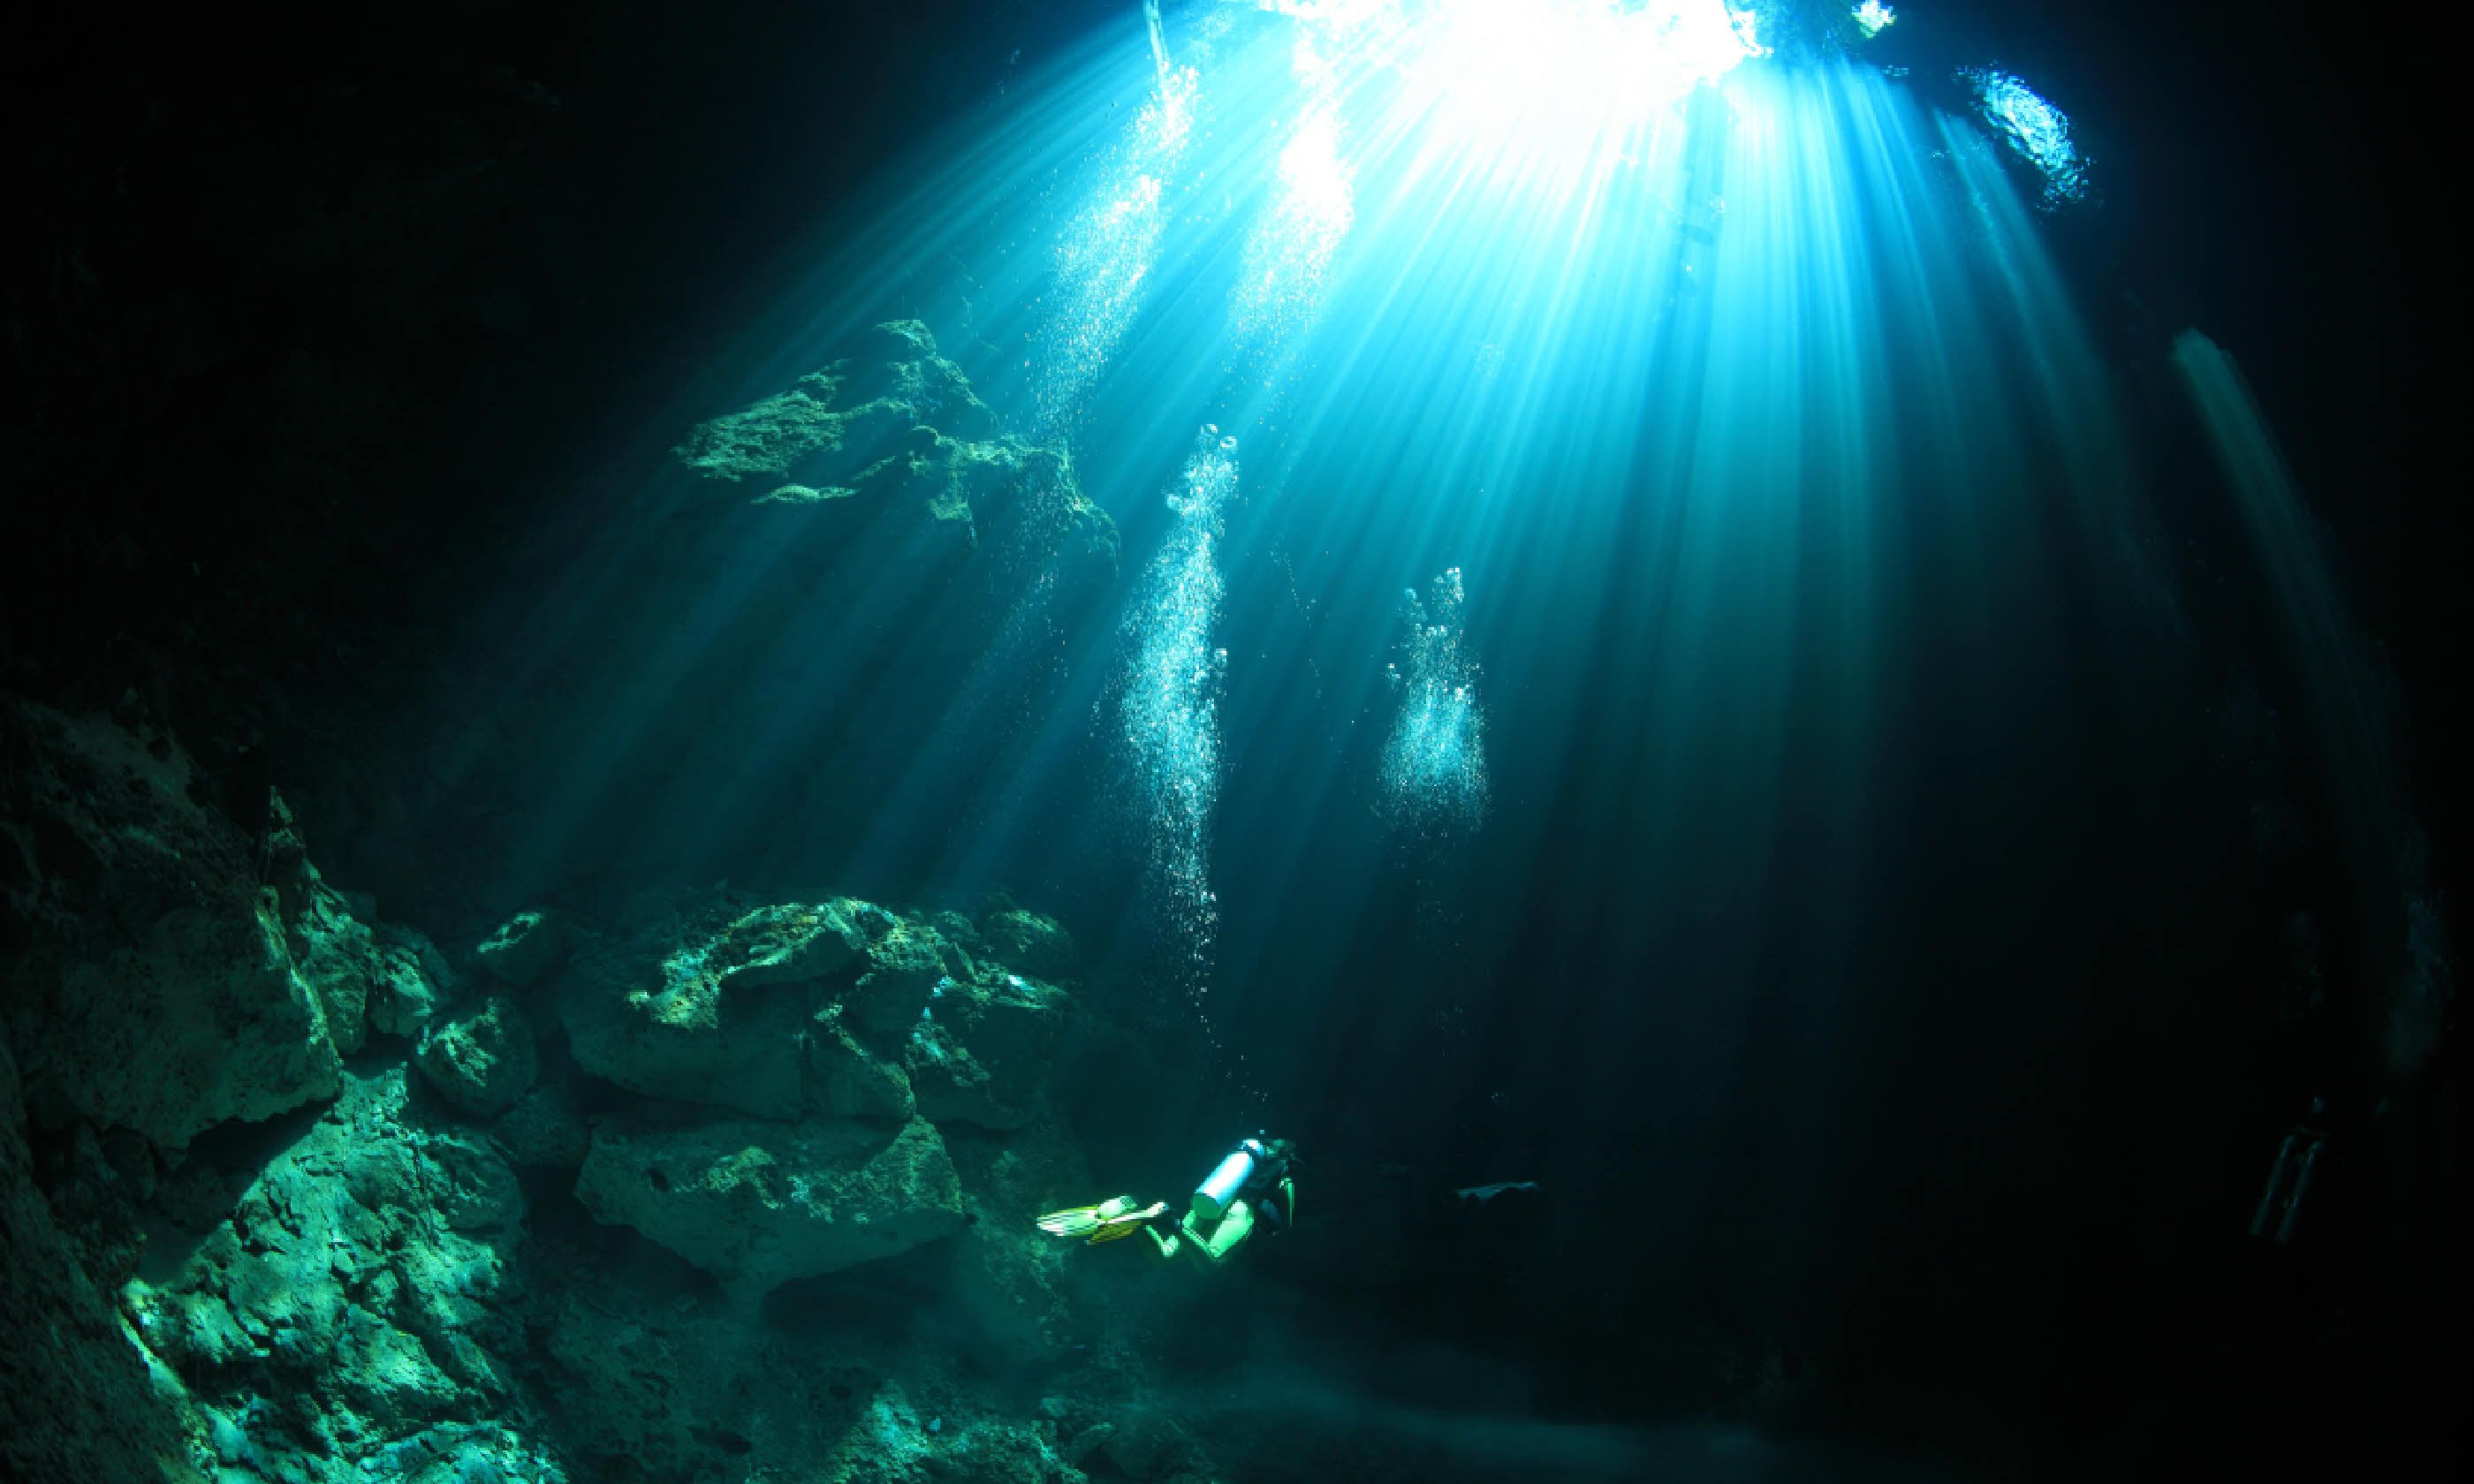 Diving in the cenote underwater caves (Shutterstock)